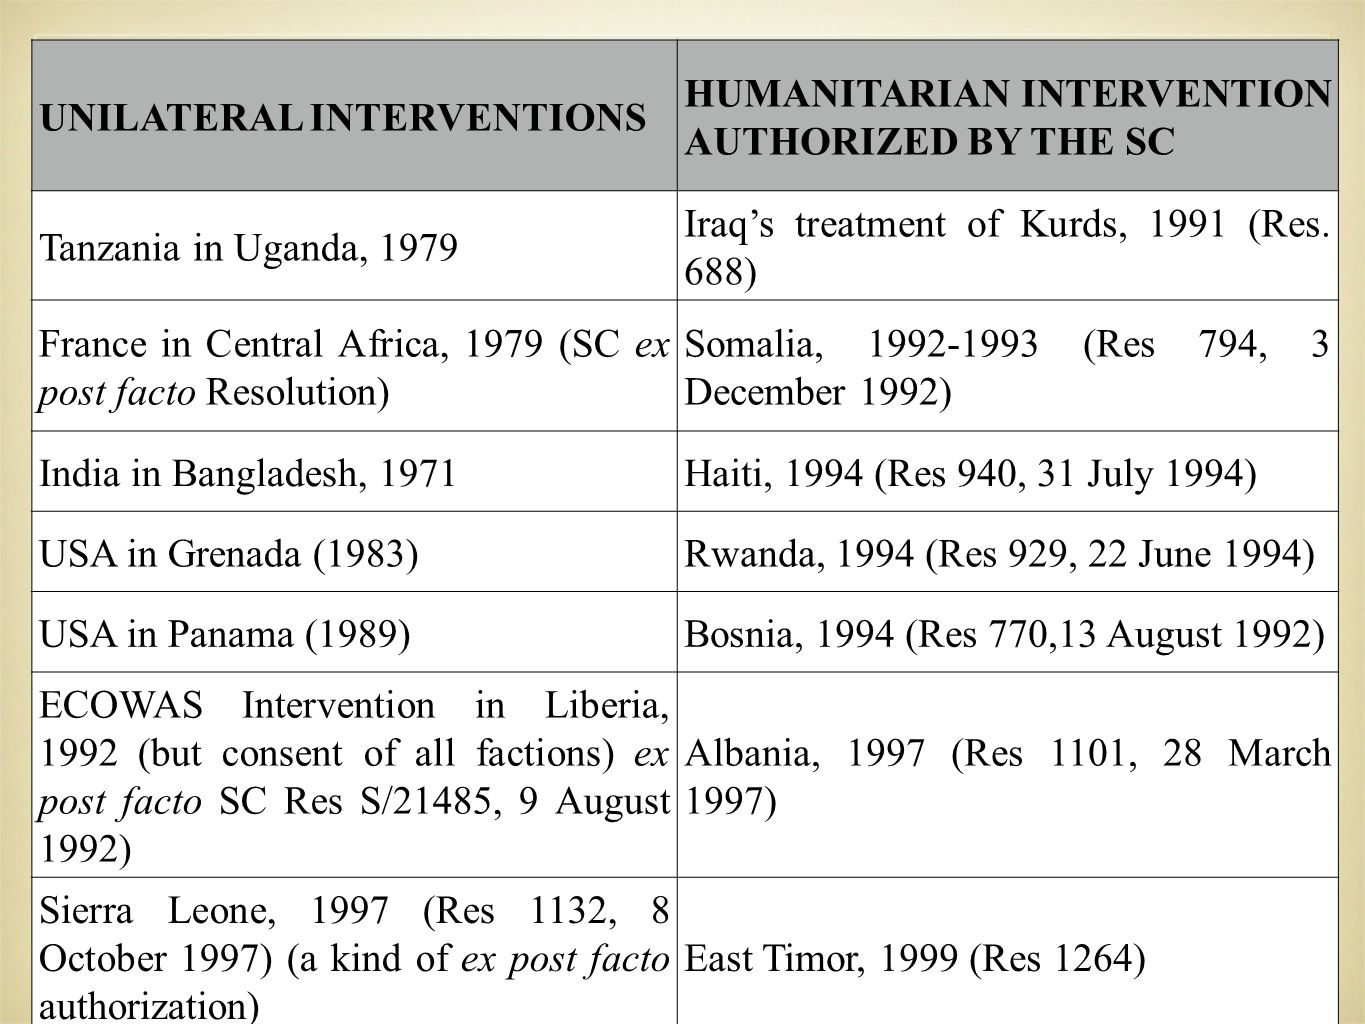 UNILATERAL INTERVENTIONS HUMANITARIAN INTERVENTION AUTHORIZED BY THE SC Tanzania in Uganda, 1979 Iraq's treatment of Kurds, 1991 (Res.